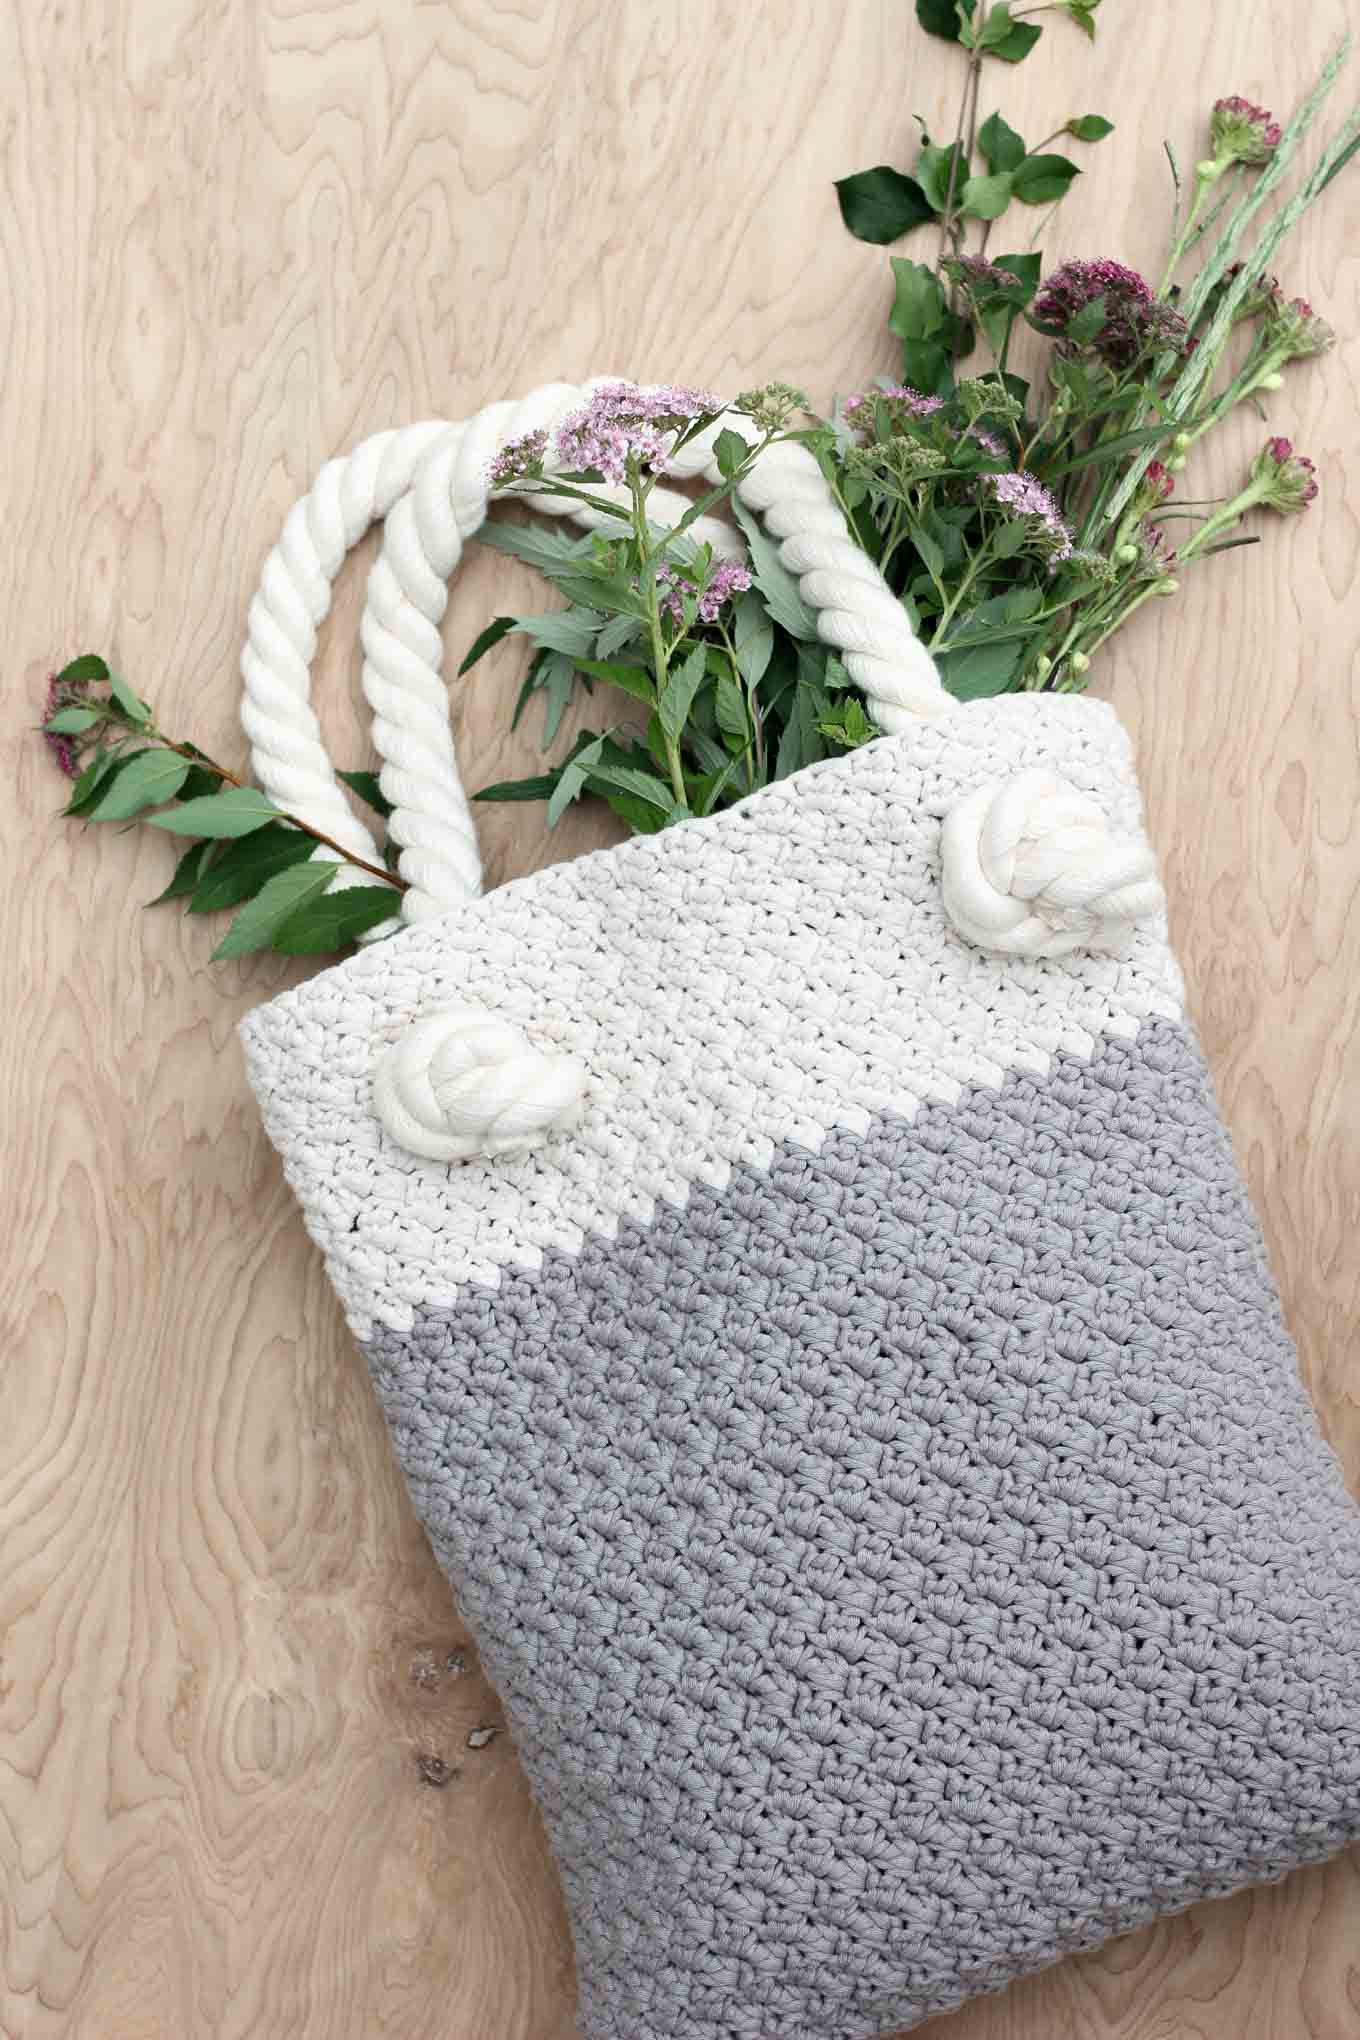 Crochet Beginning Patterns : Easy + Modern Free Crochet Bag Pattern for Beginners